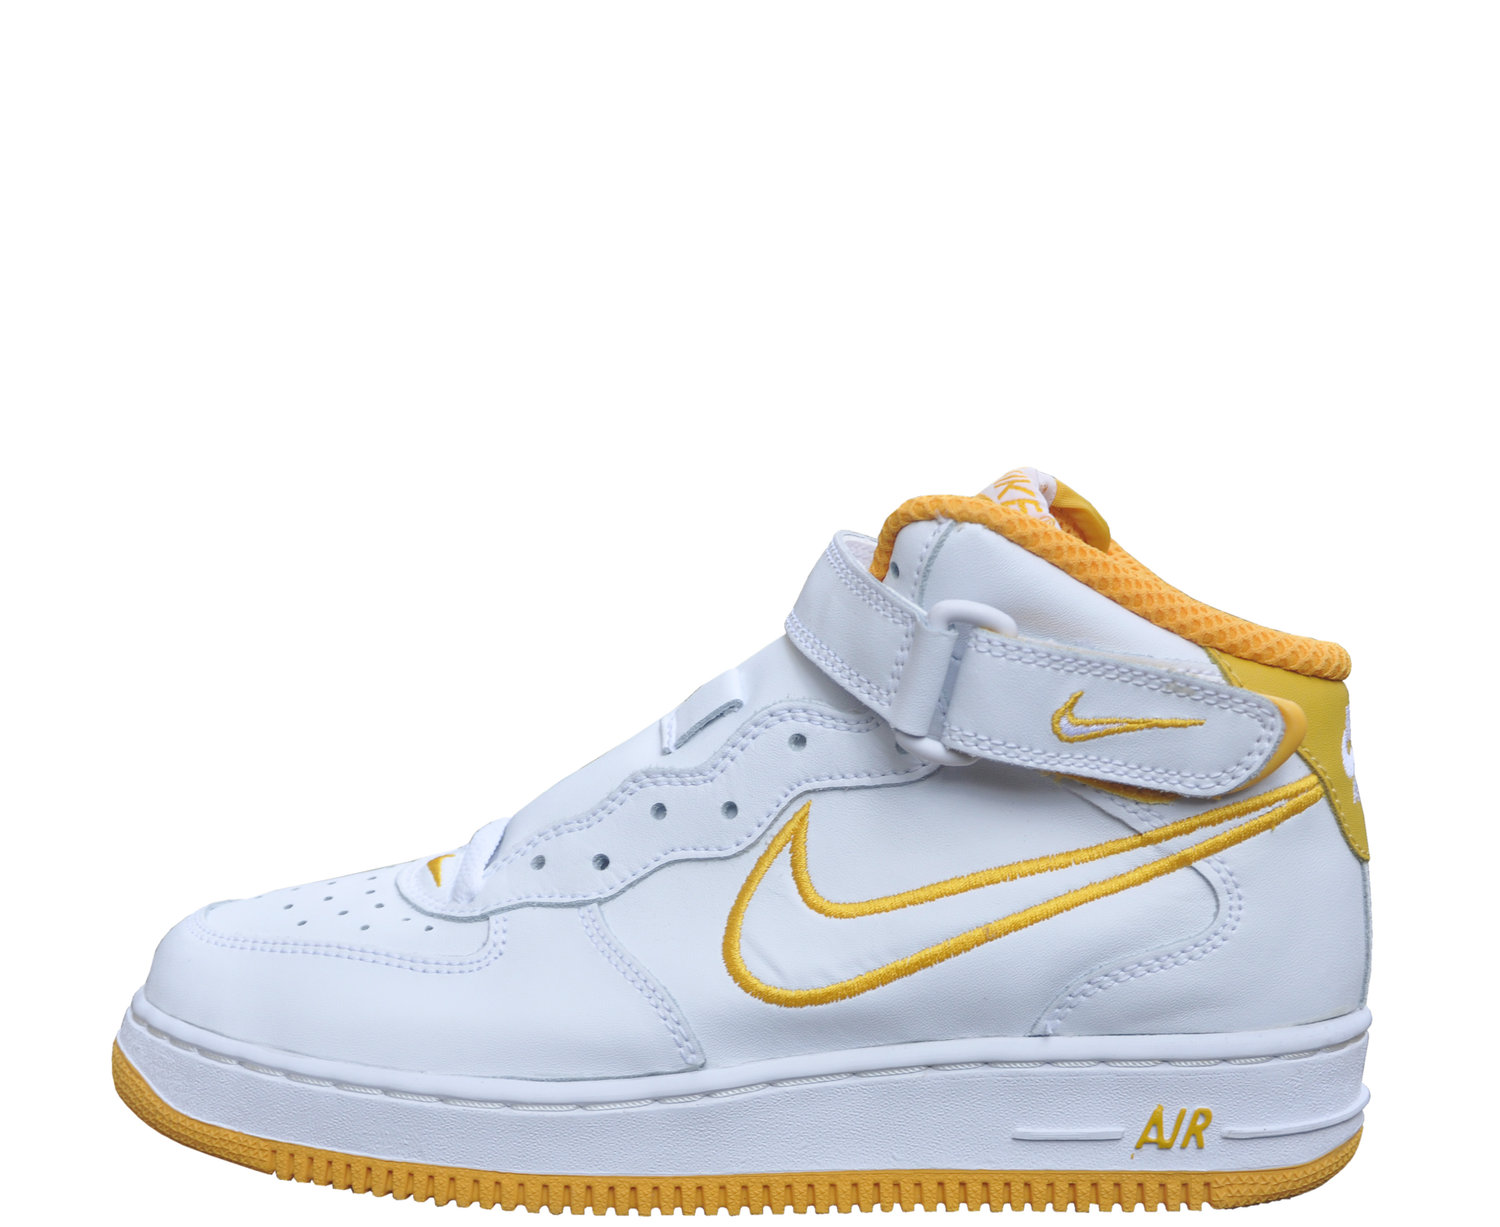 5b1b7ae5 Kids Nike Air Force 1 Mid SC White / University Gold (Size 5) DS — Roots